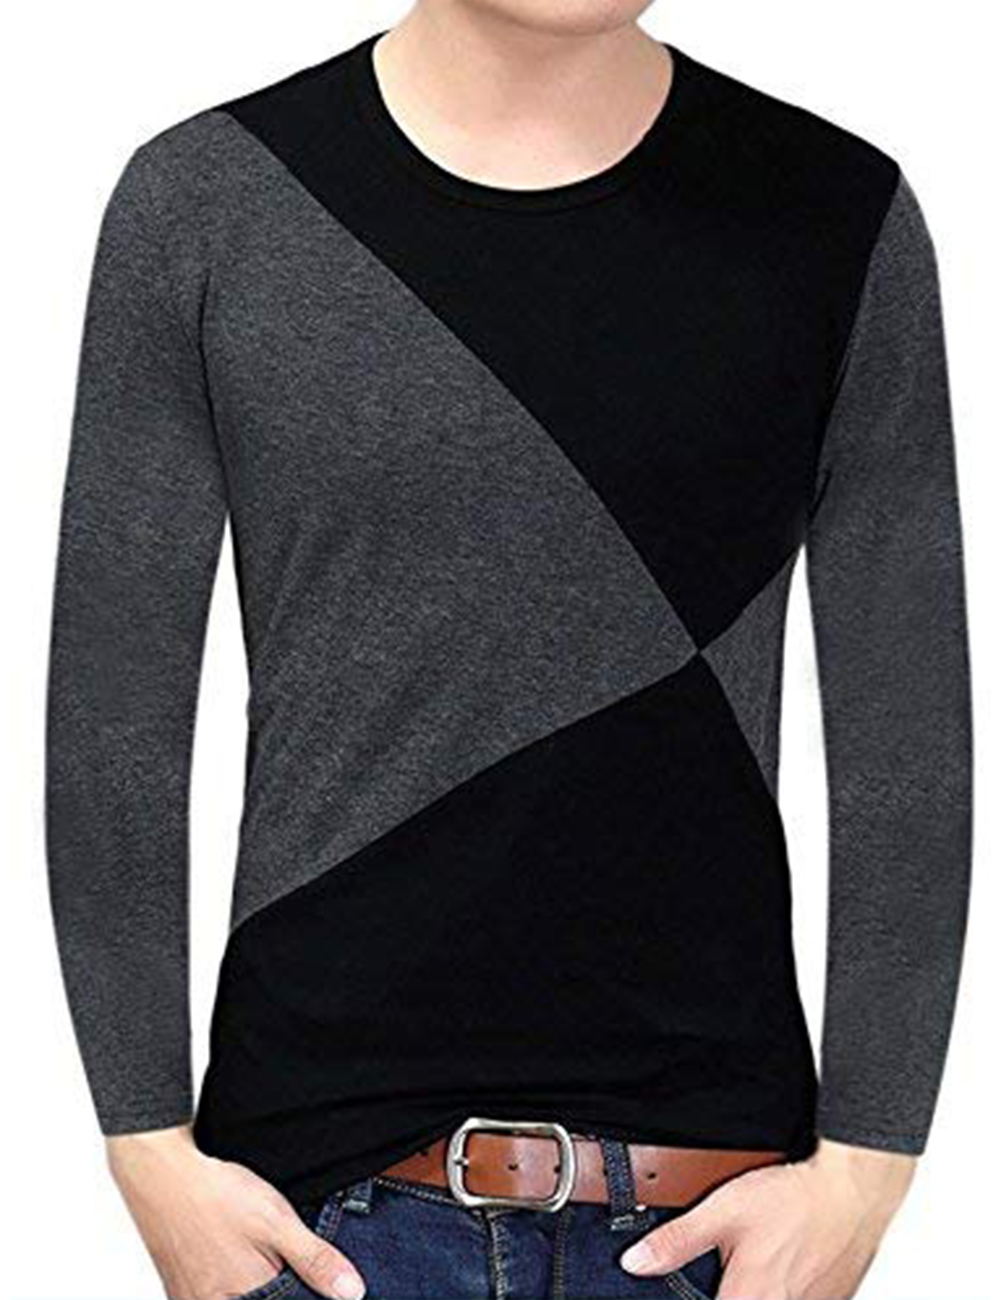 Yong Horse Men's Contrast Color Crew Neck Long Sleeve Basic T-Shirt Top Black-grey_S